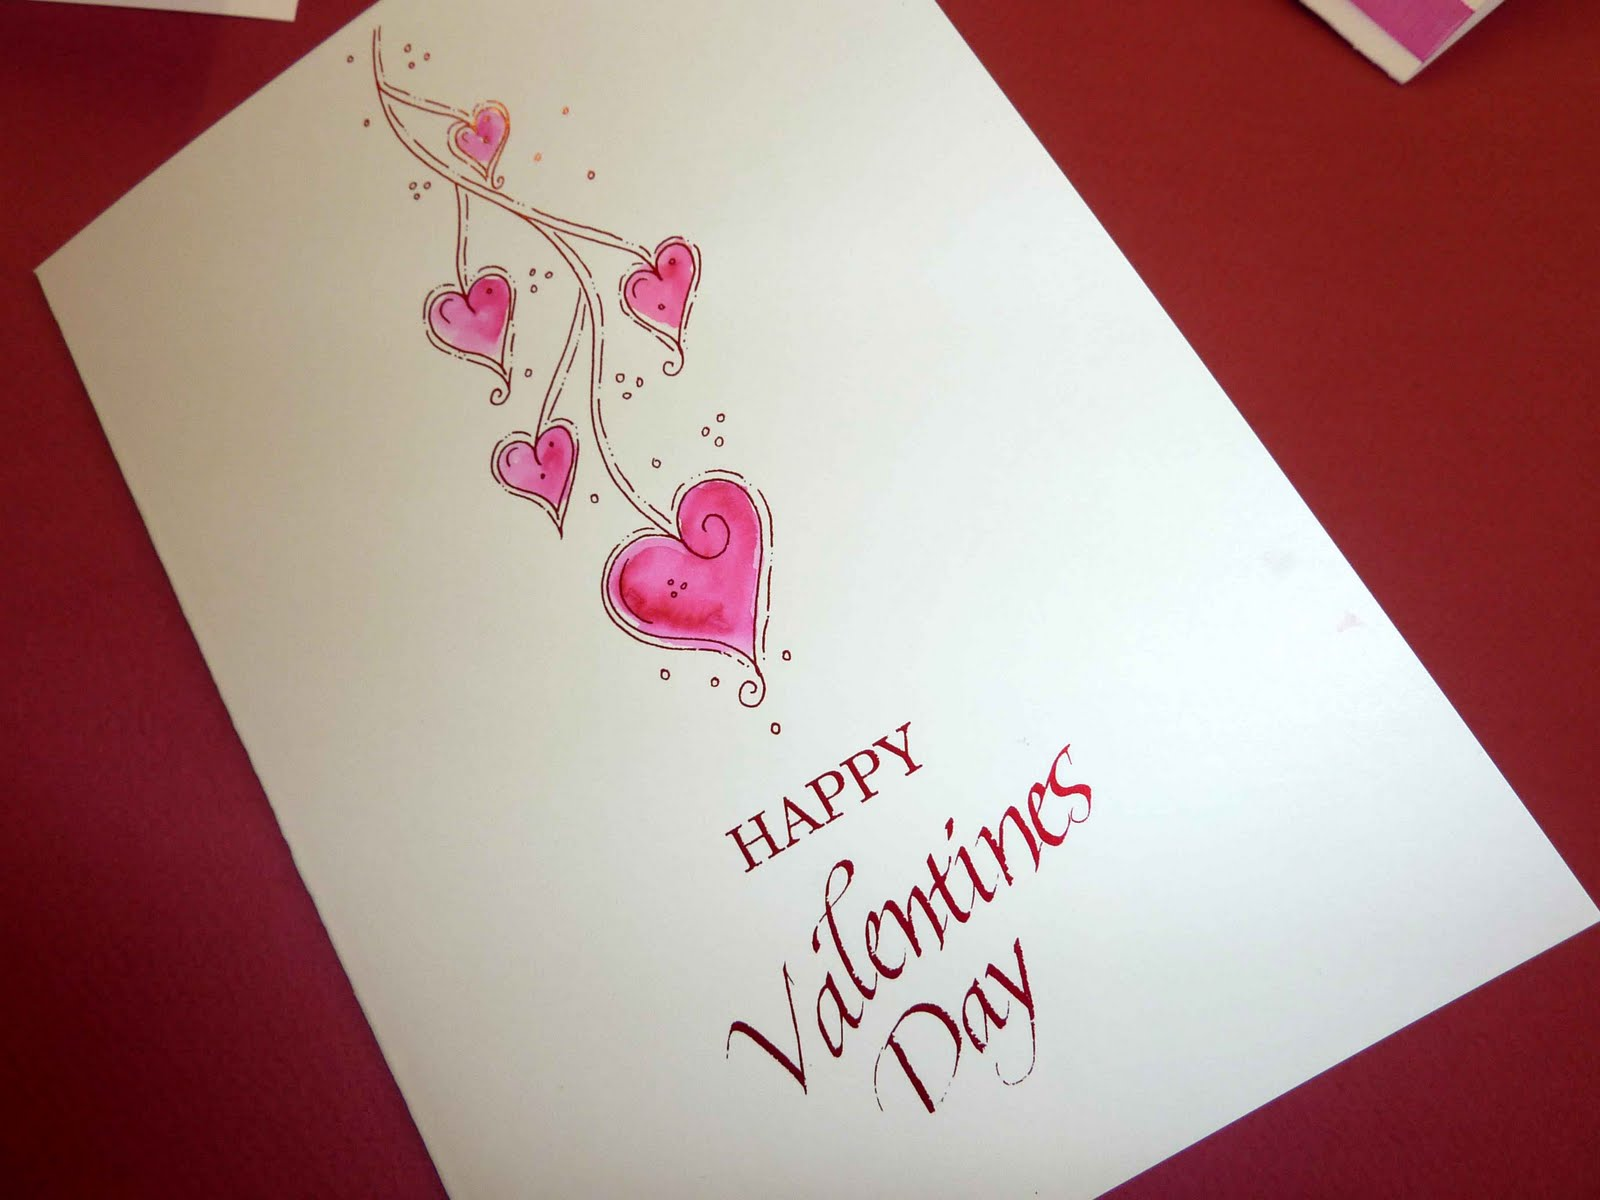 Valentines Day Gift Card, Greeting Cards & Ecards 2018 for GF, BF, Wife, Husband, Crush, Fiance, Couple & Lovers